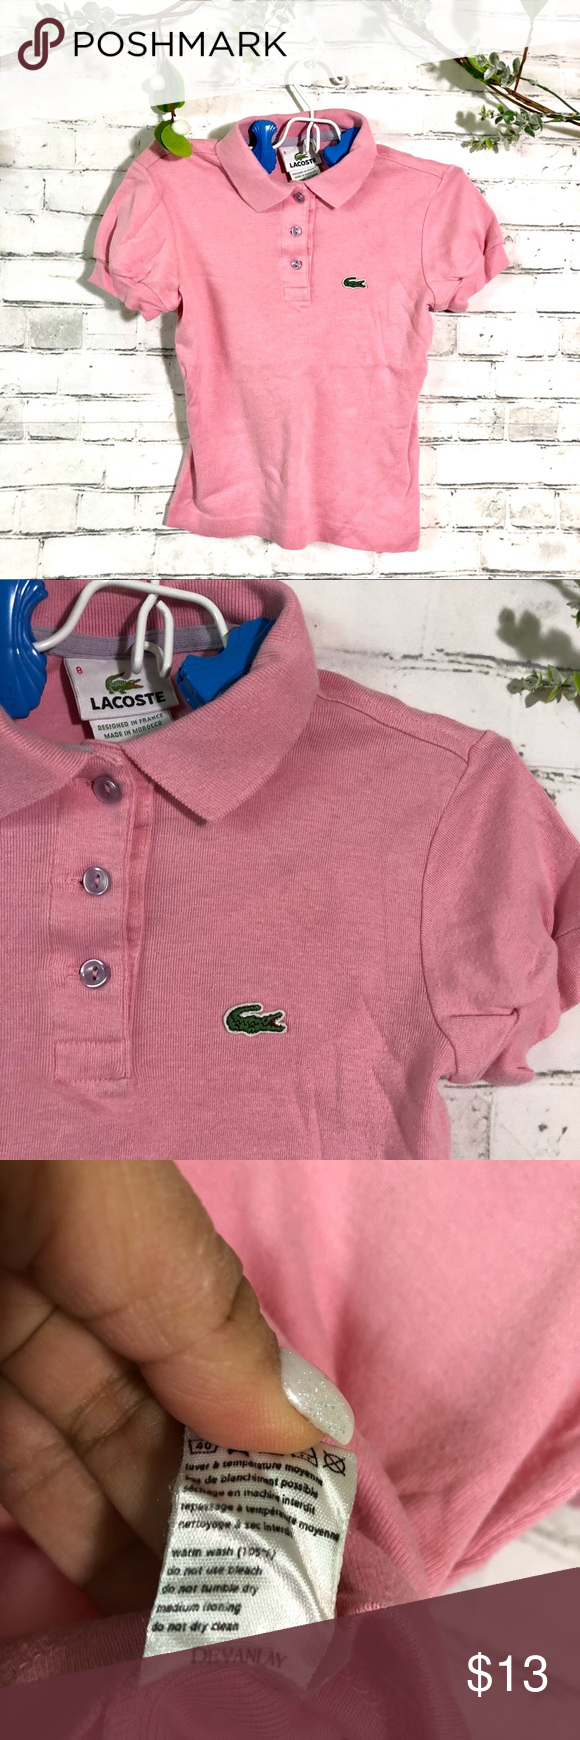 0b824158e3 How Do Lacoste Polo Shirts Fit